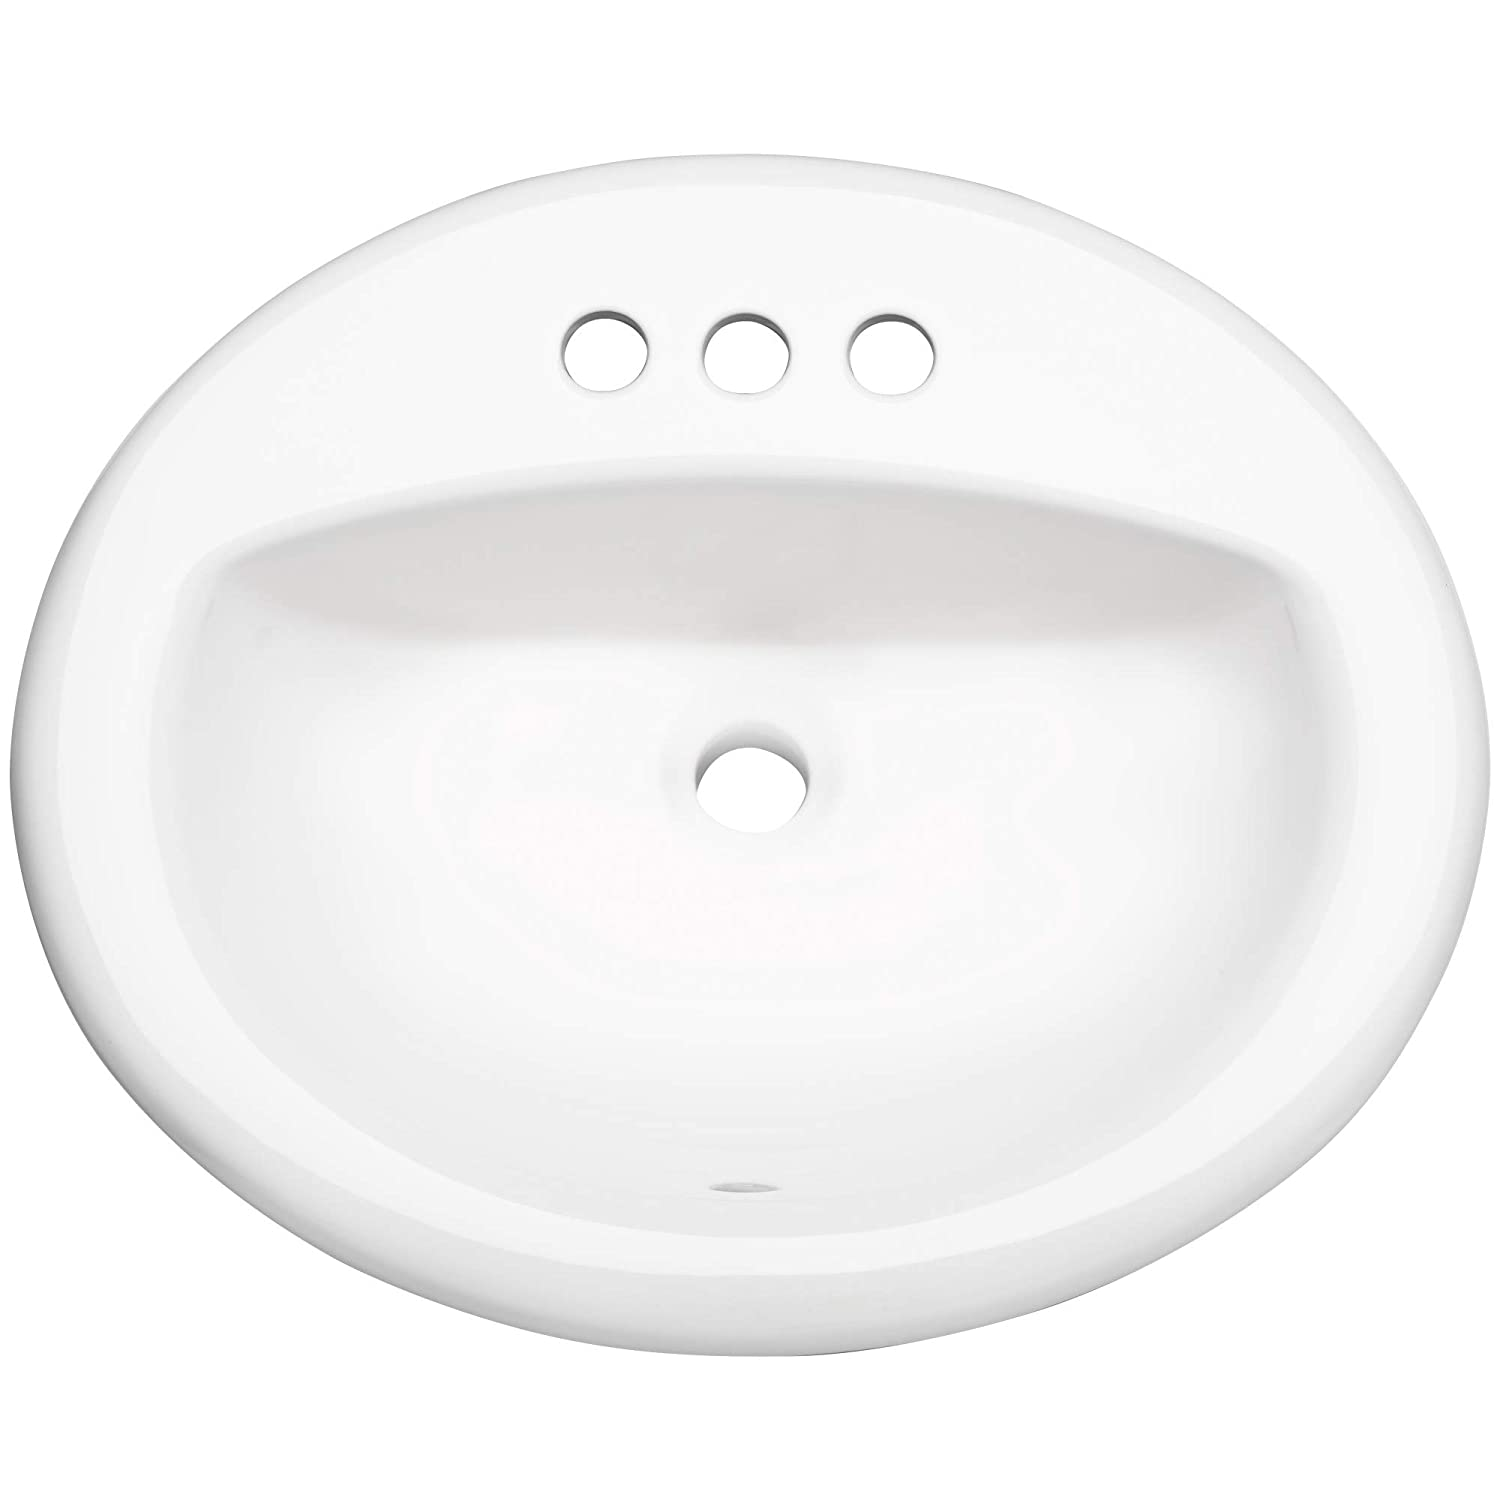 PROFLO PF20174WH 20-1 2 Self Rimming Drop-In Oval Bathroom Sink – 3 Holes Drilled